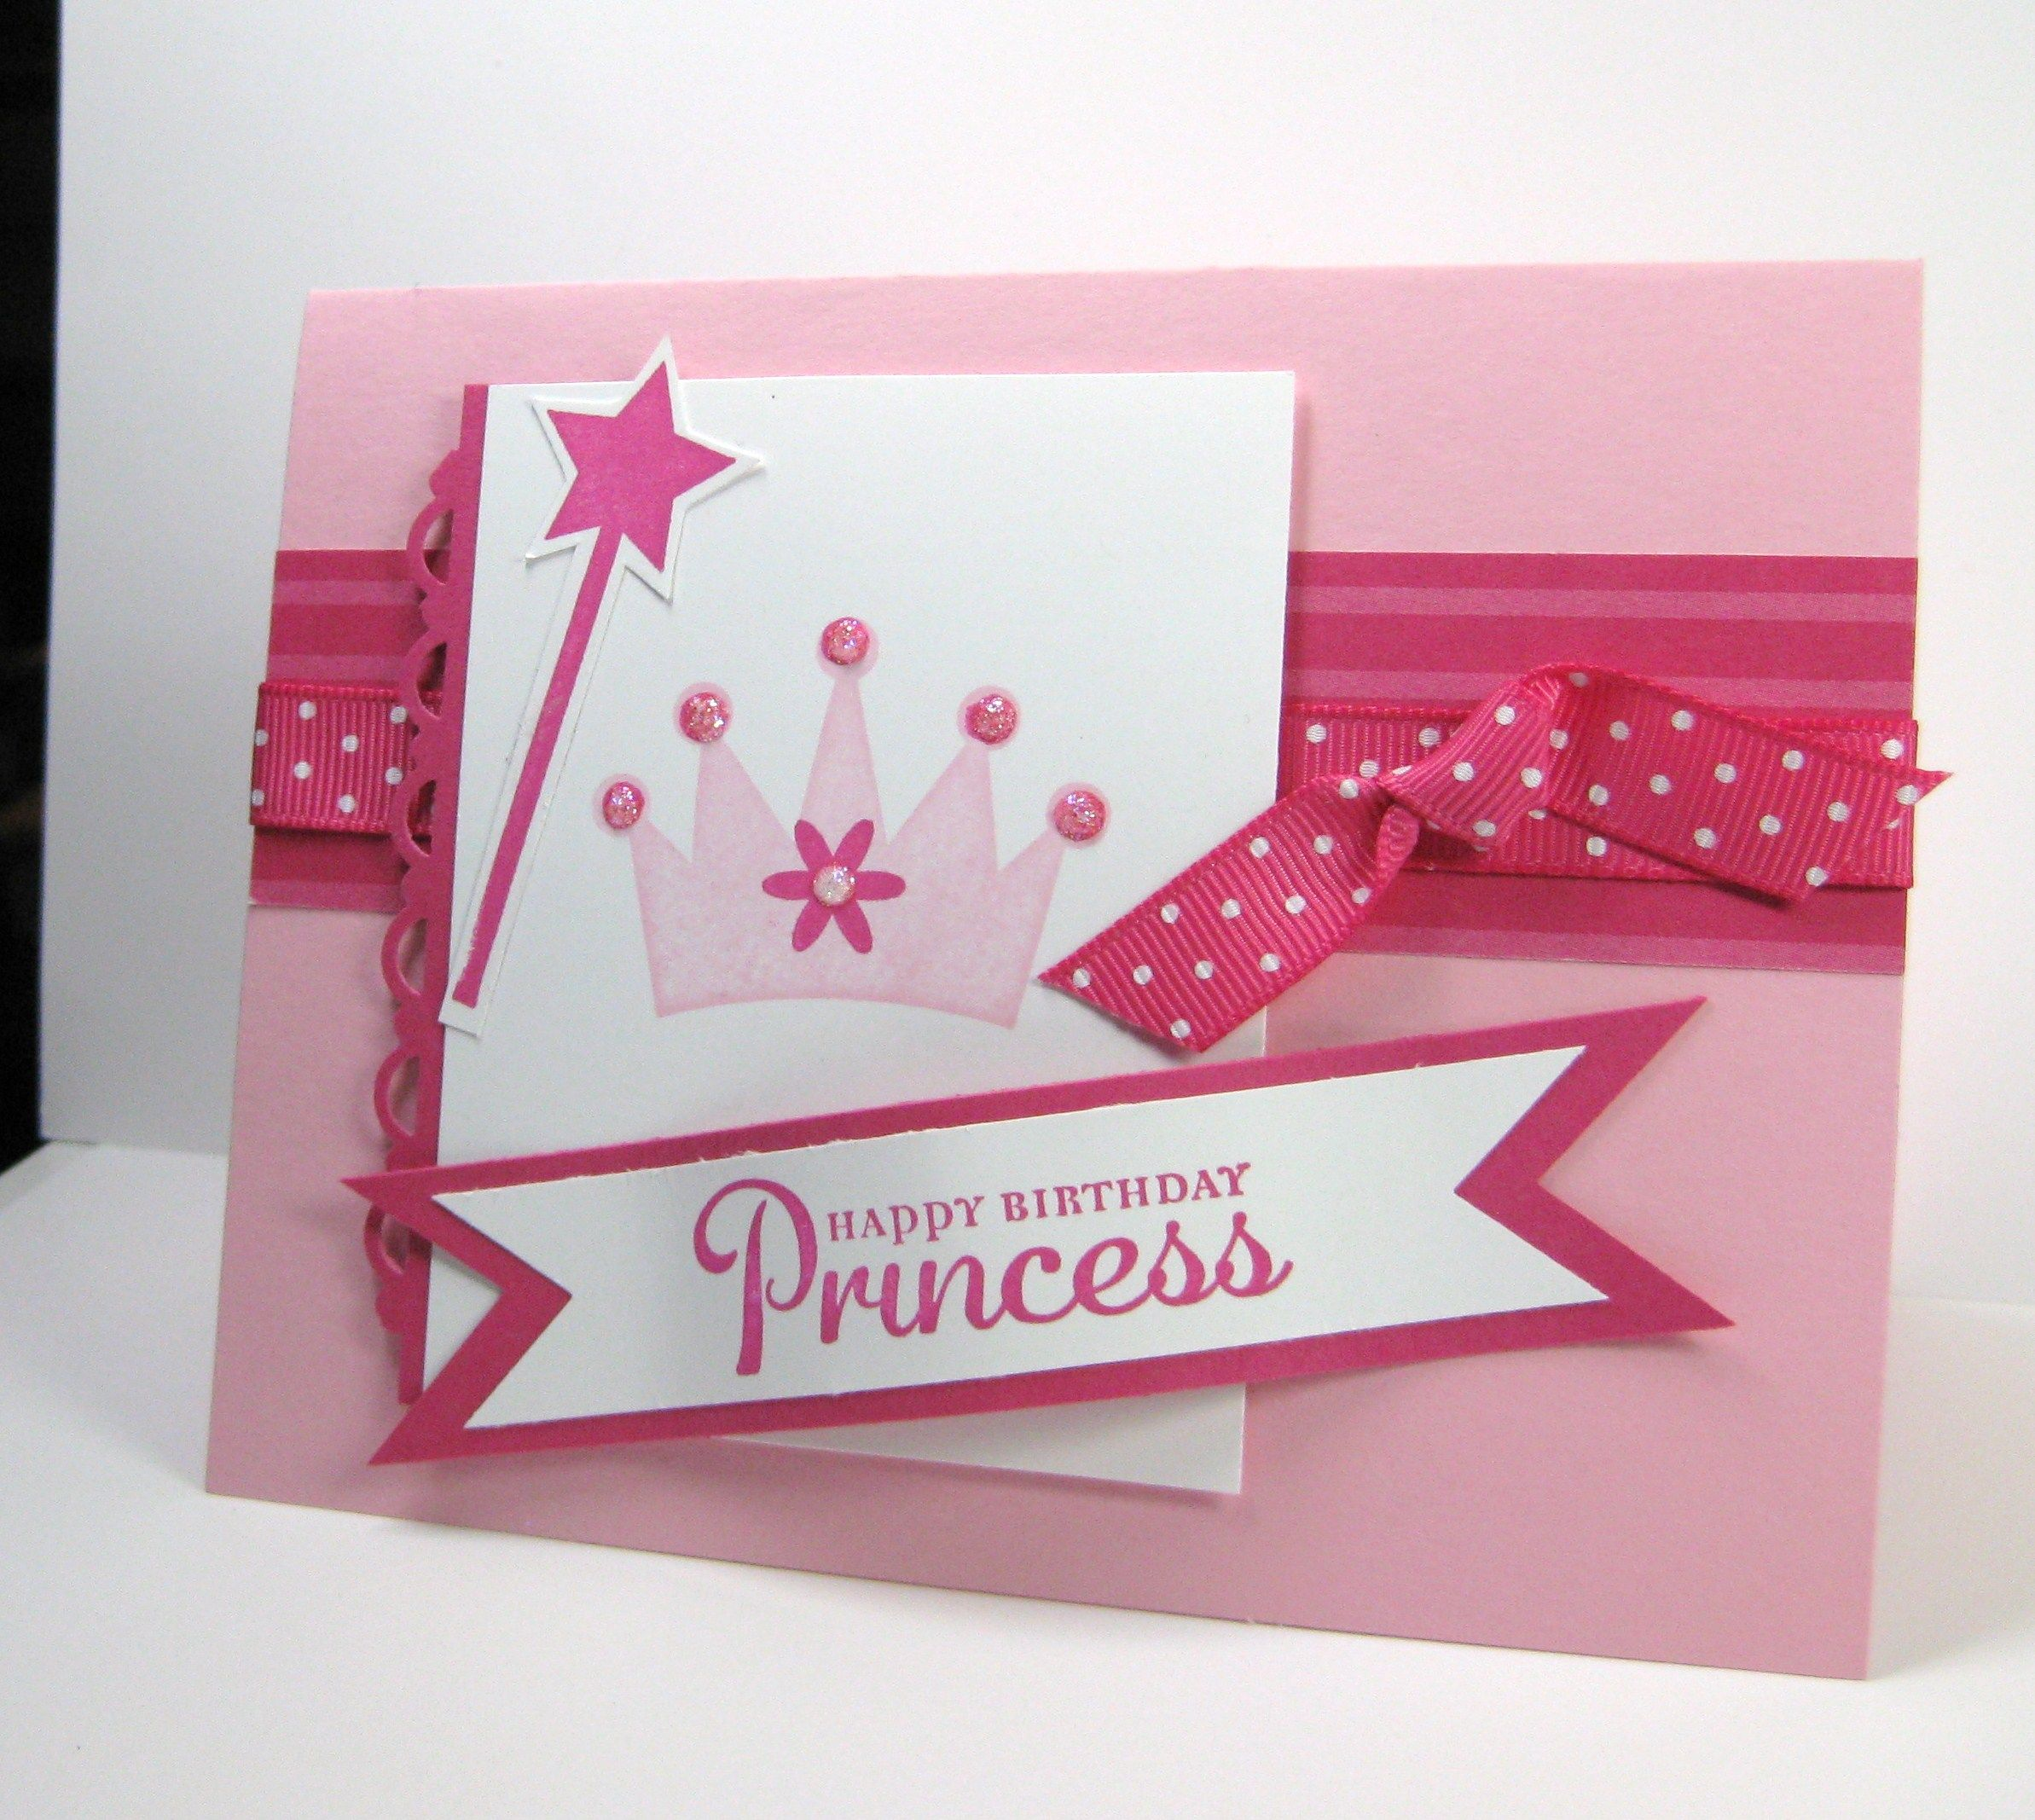 Happy Birthday Princess Card Princess Pinterest Happy